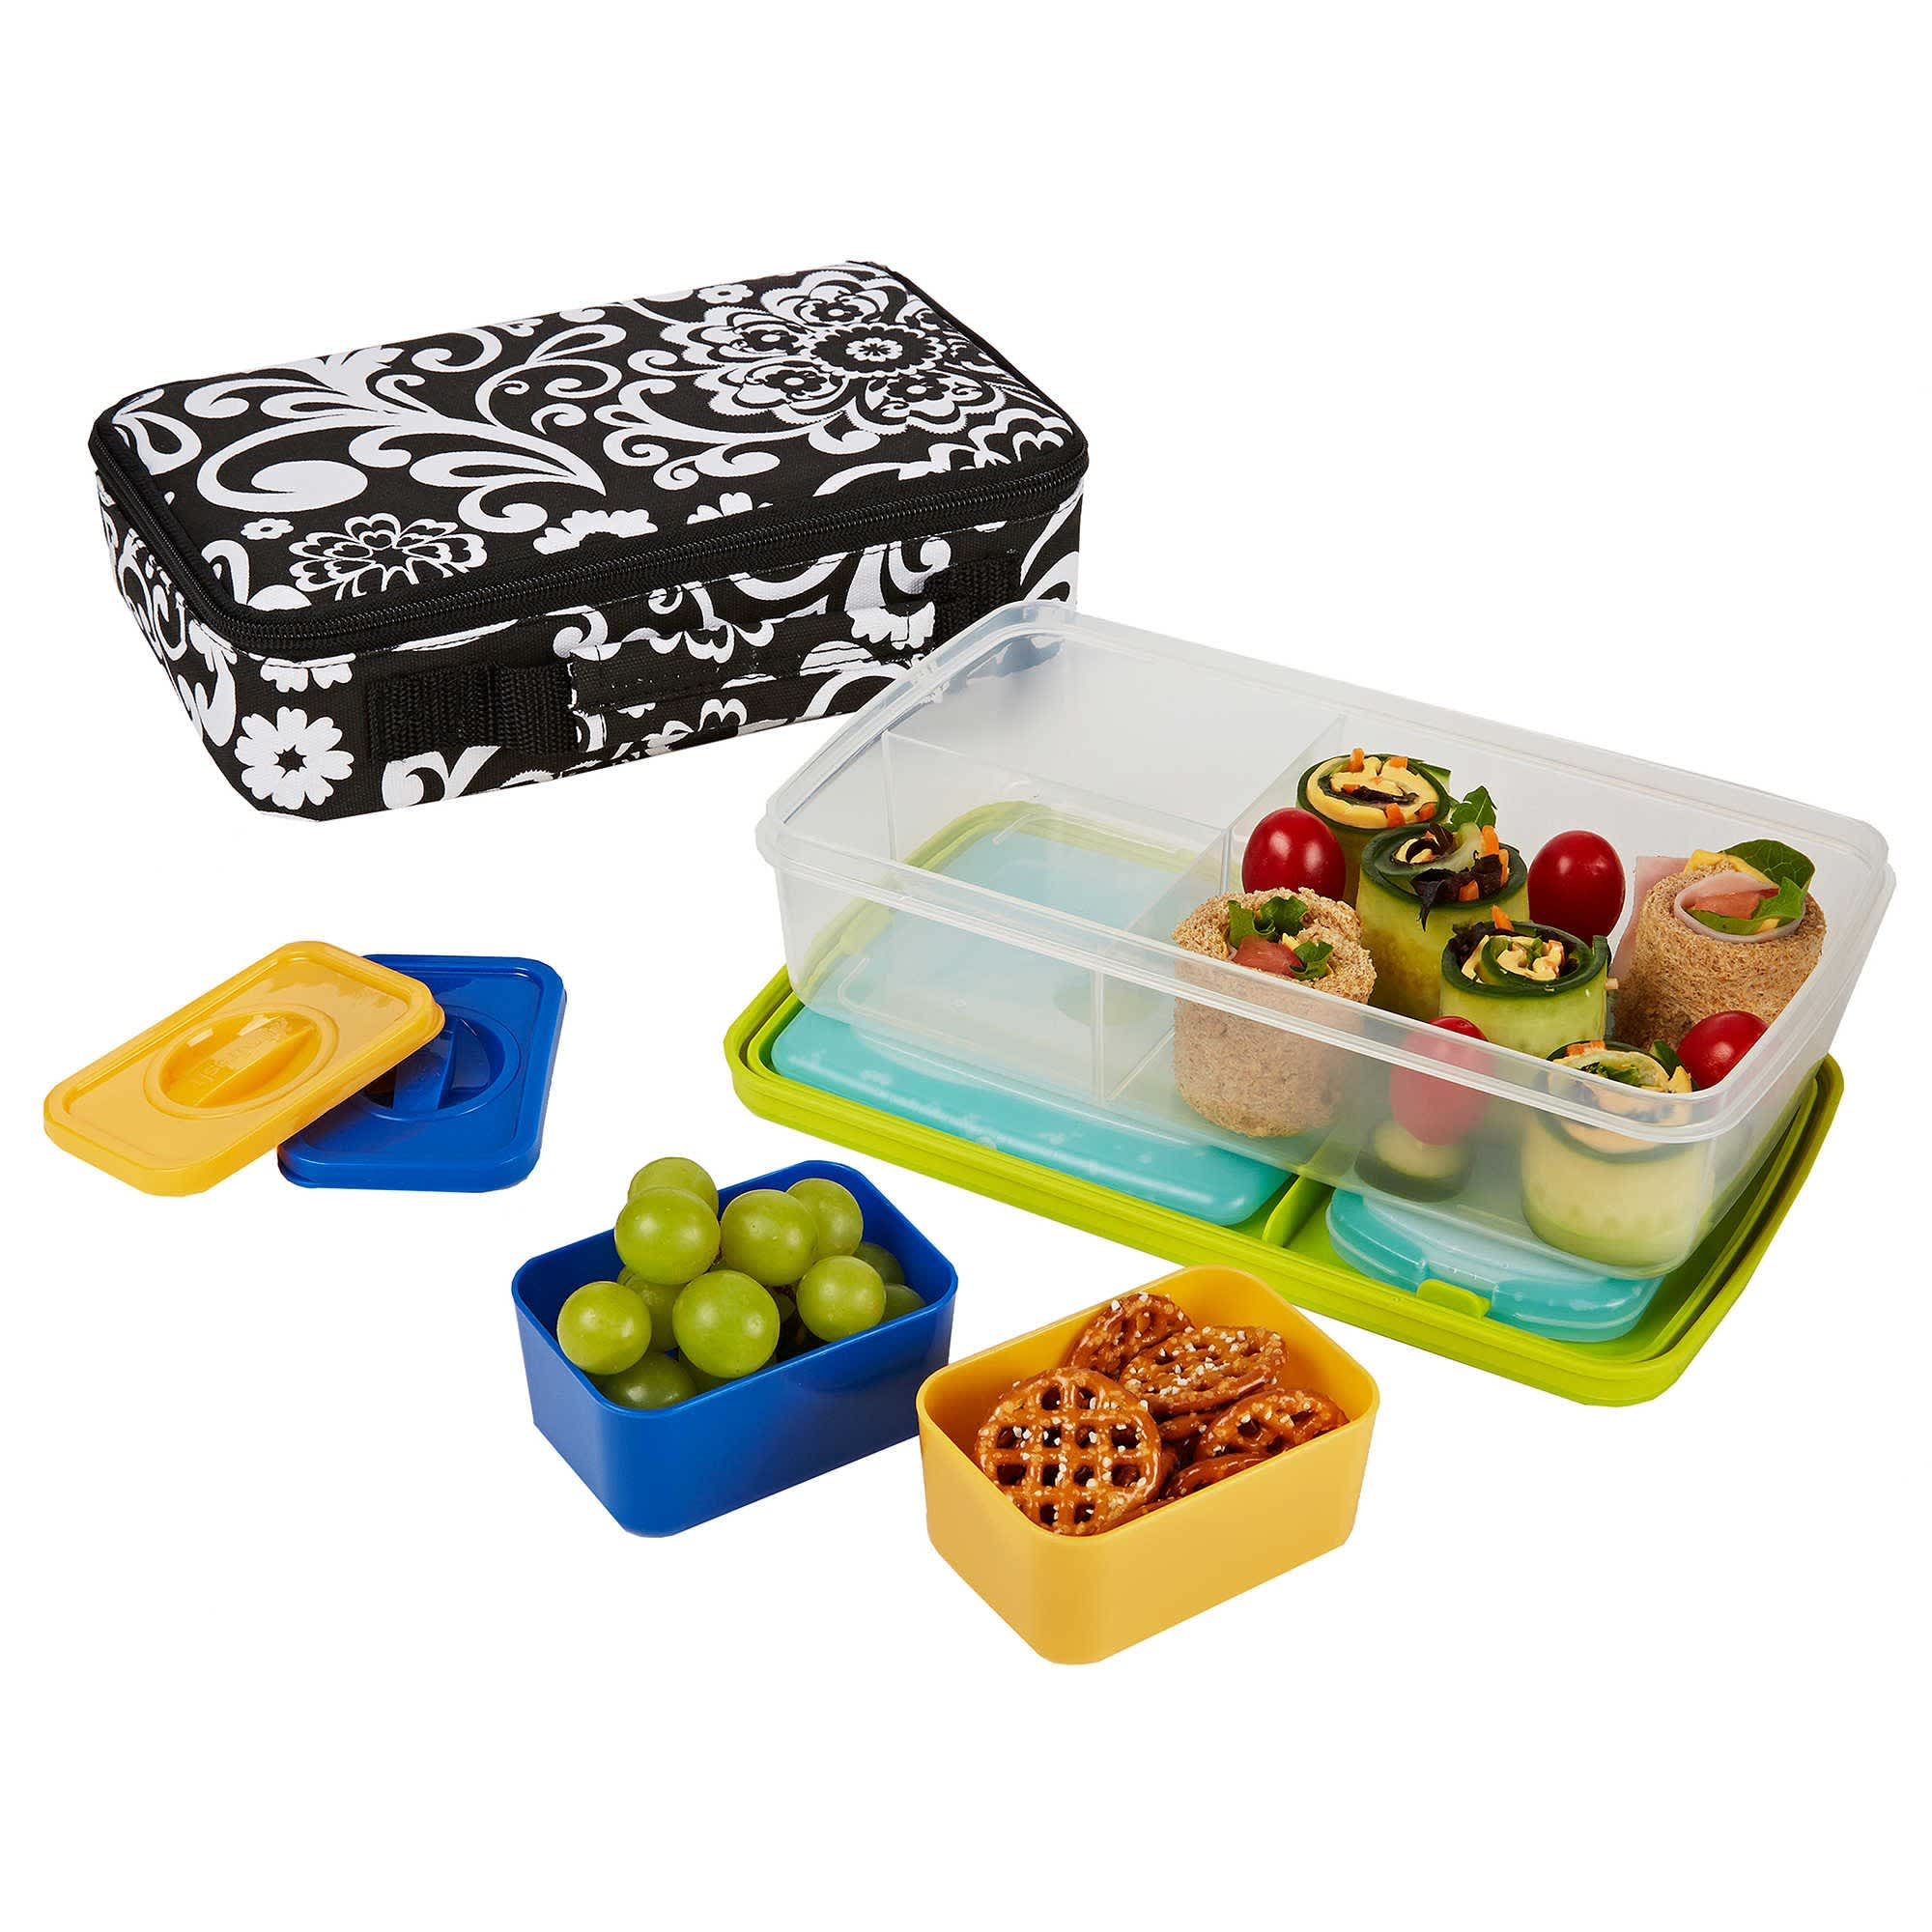 8 Bento Boxes to Help You Brown Bag It: gallery image 5